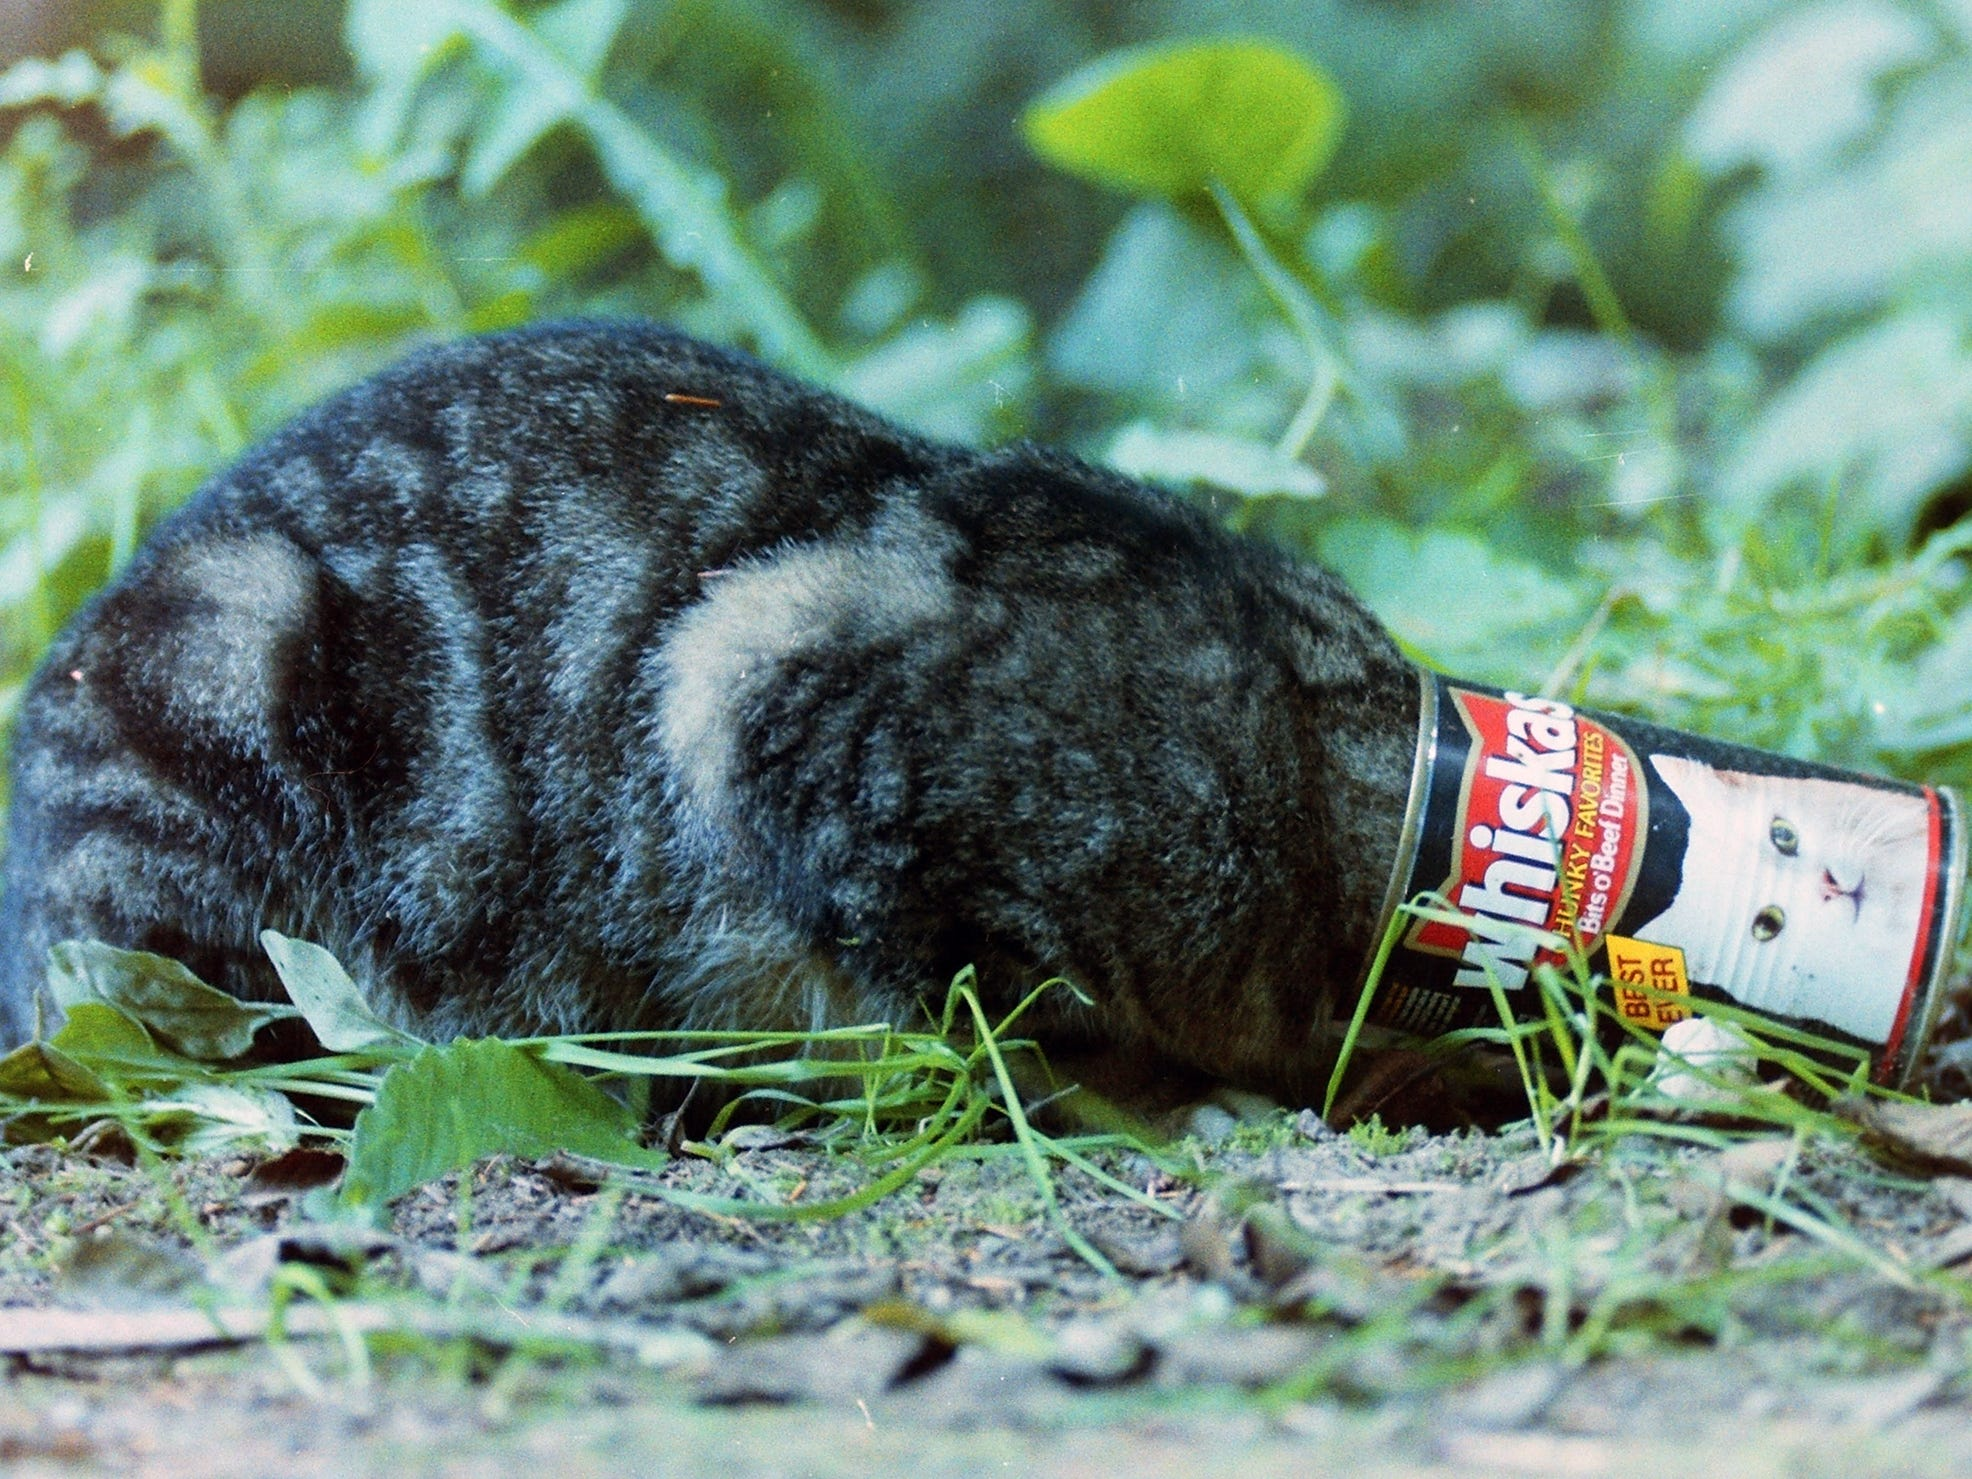 10/11/91